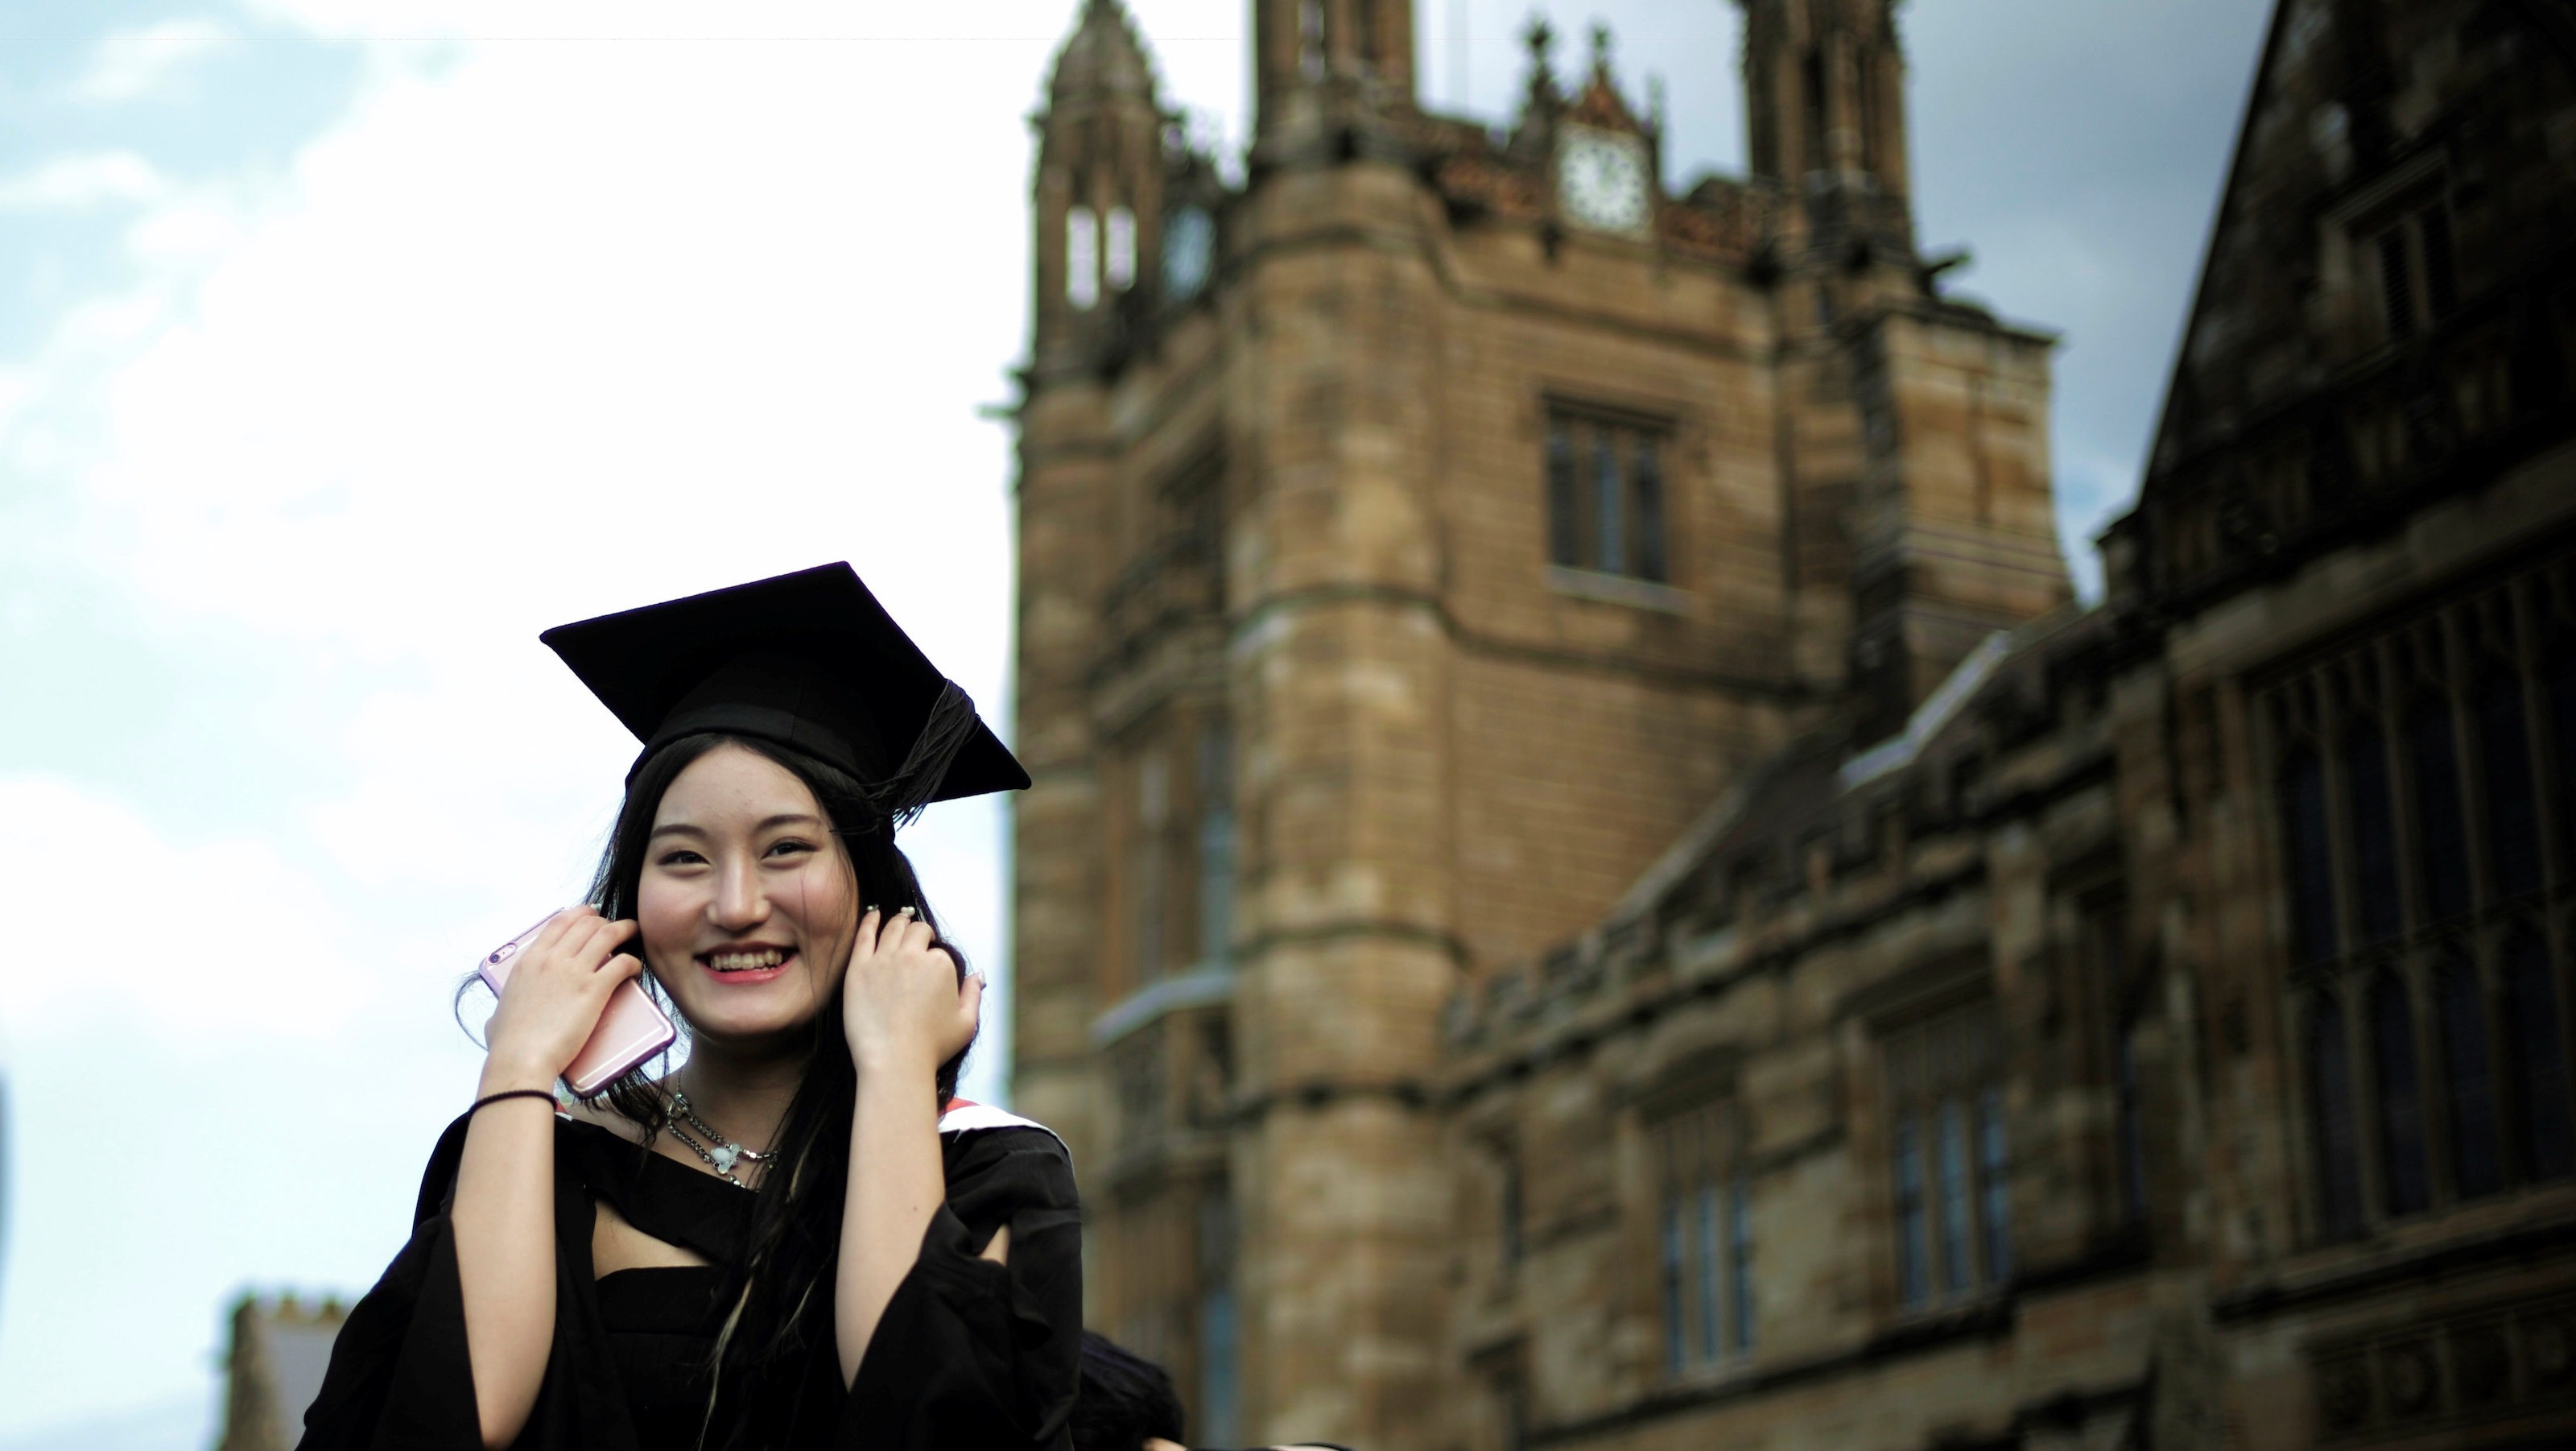 A School of Business graduate poses for a picture taken by a family member (not pictured) outside the main building at the University of Sydney in Australia, April 22, 2016.     REUTERS/Jason Reed                   AUNI - RTSL4VV